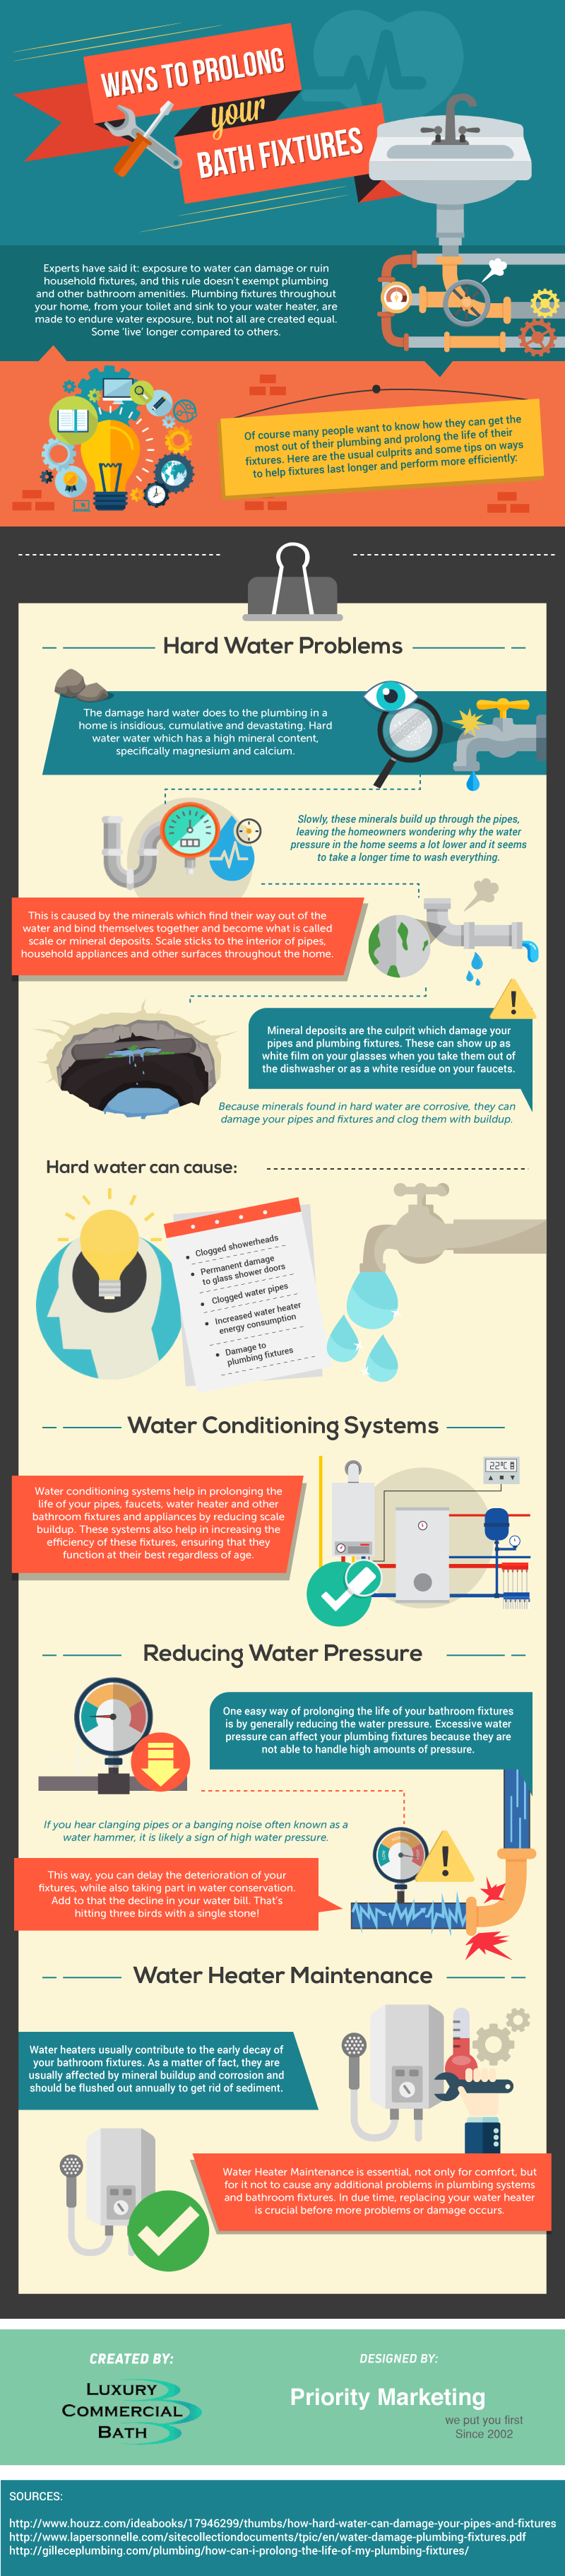 Bath Fixtures ways to prolong your bath fixtures infographic